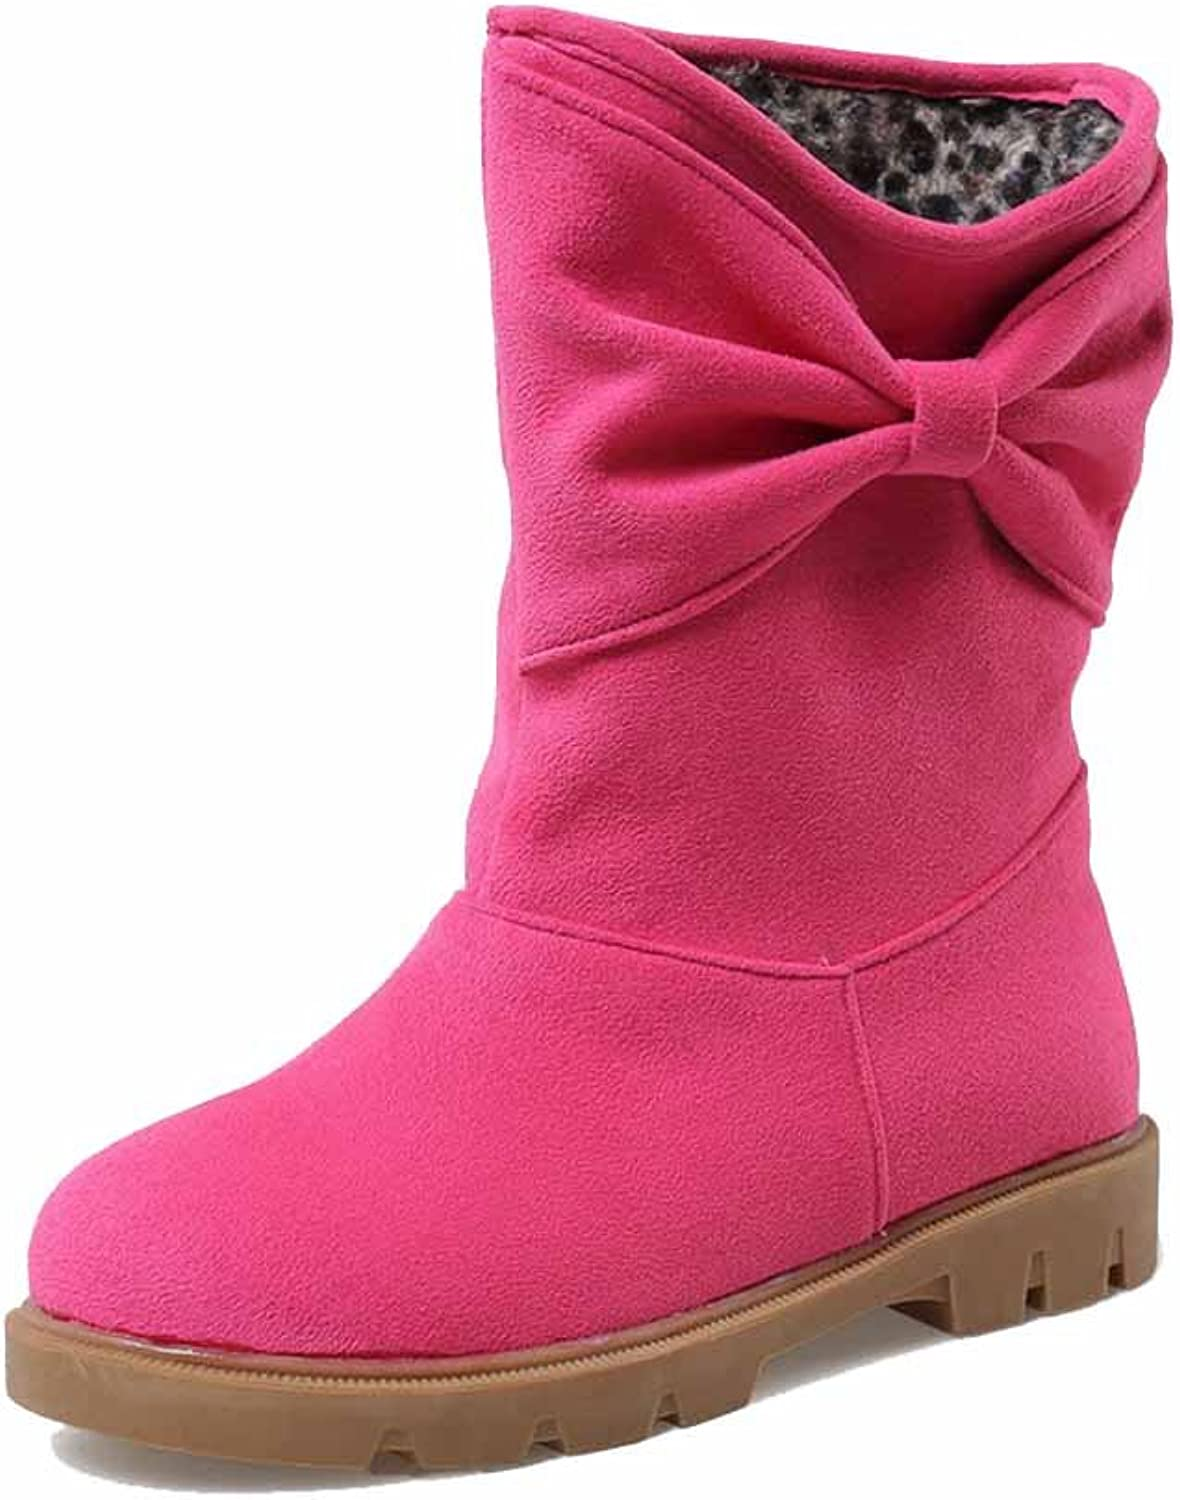 WeiPoot Women's Imitated Suede Low Heels Round Closed Toe Solid Pull On Boots